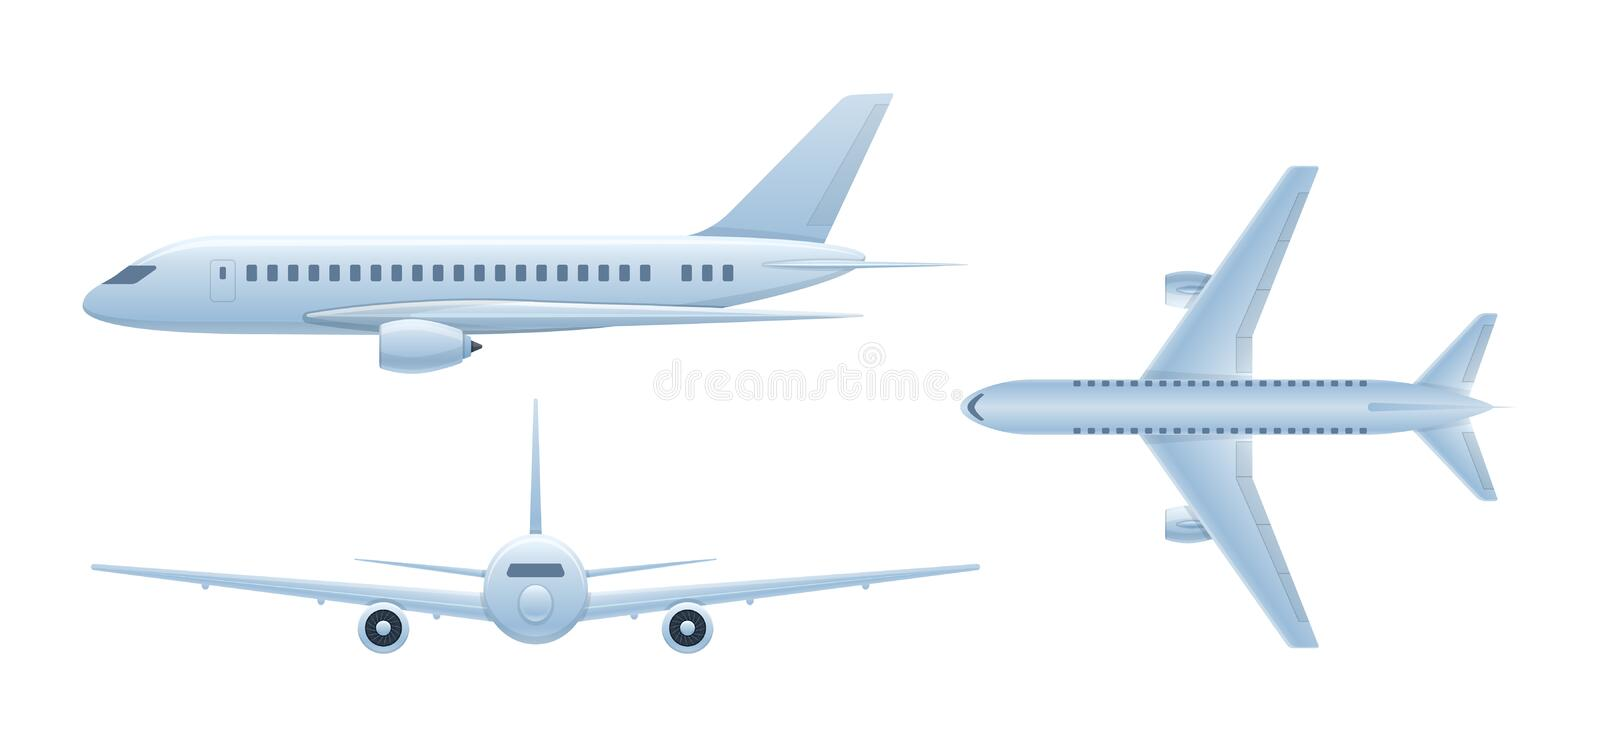 Air vehicles. Flying airplane, airliner. Passenger plane in different angles. stock illustration